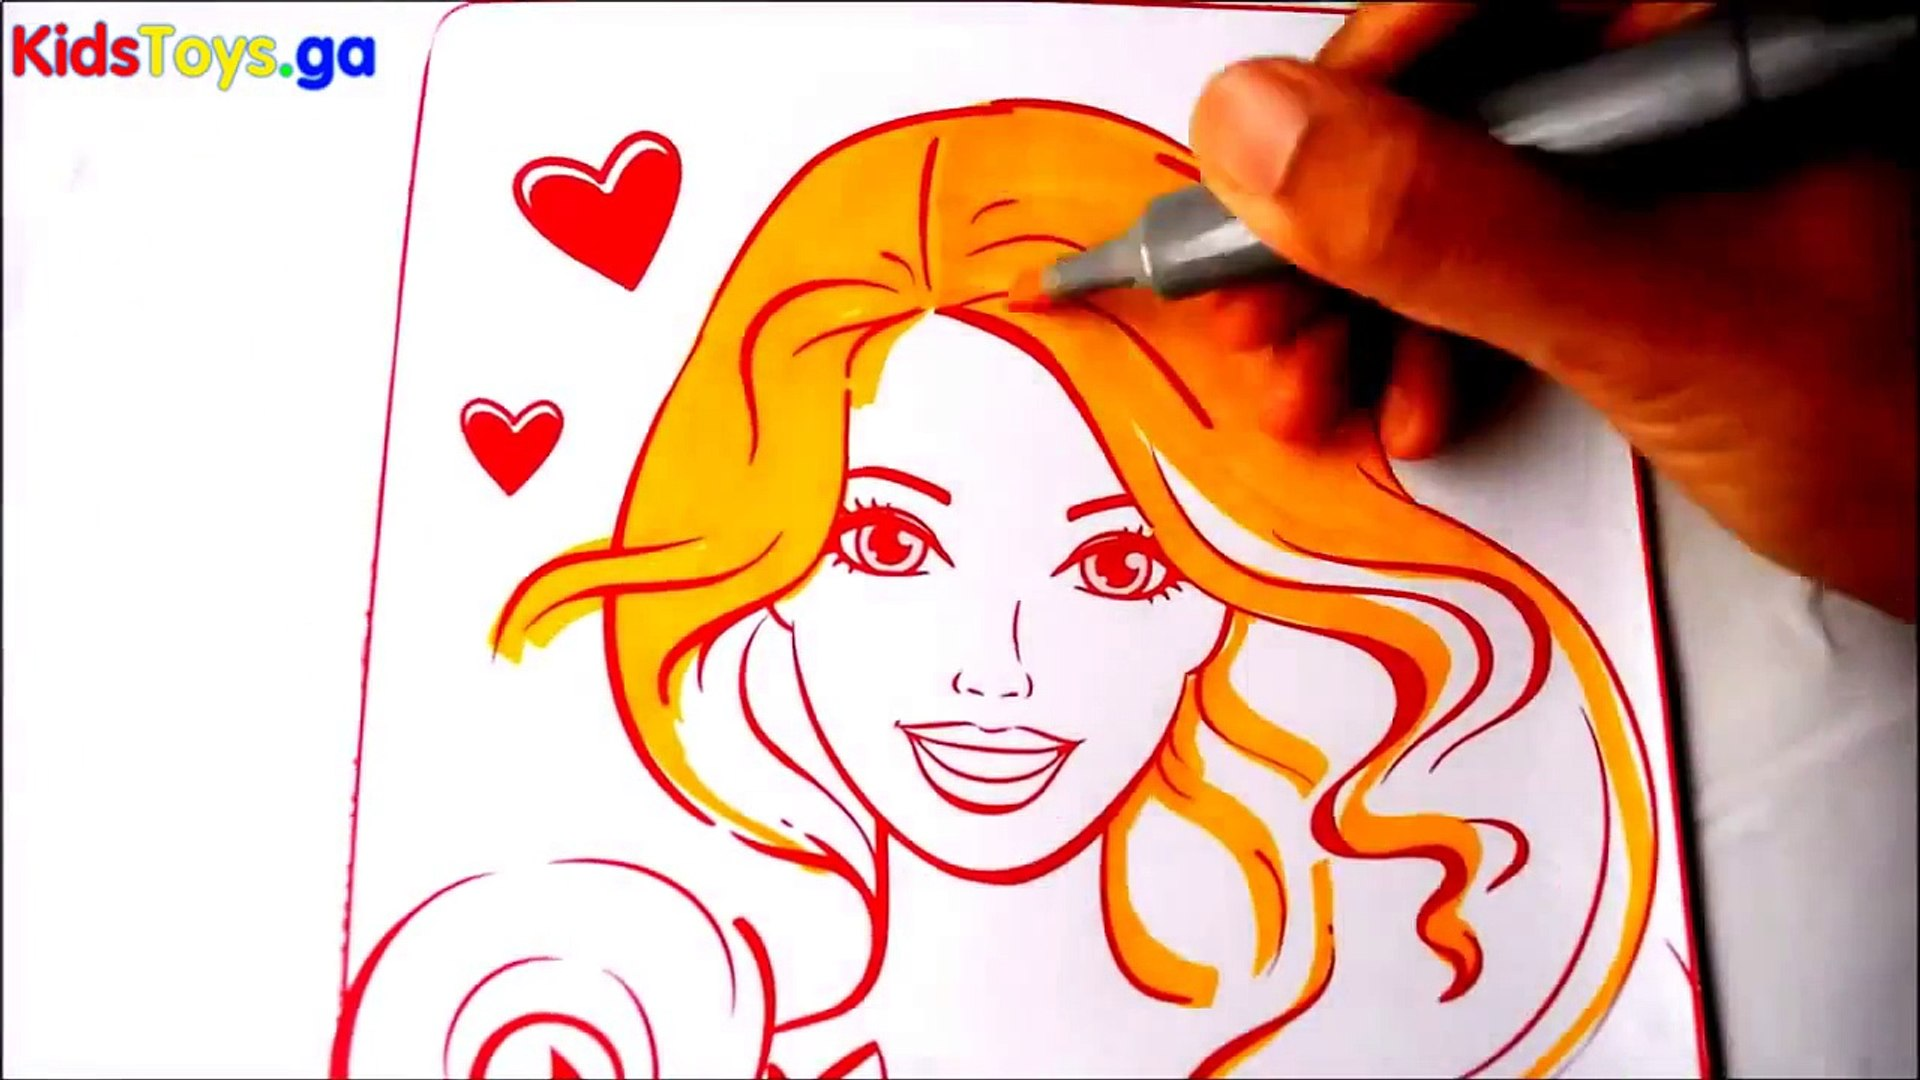 BARBIE Coloring Books Videos Kids Fun Arts Learning Activities Kids Balloons and Toys - Disney